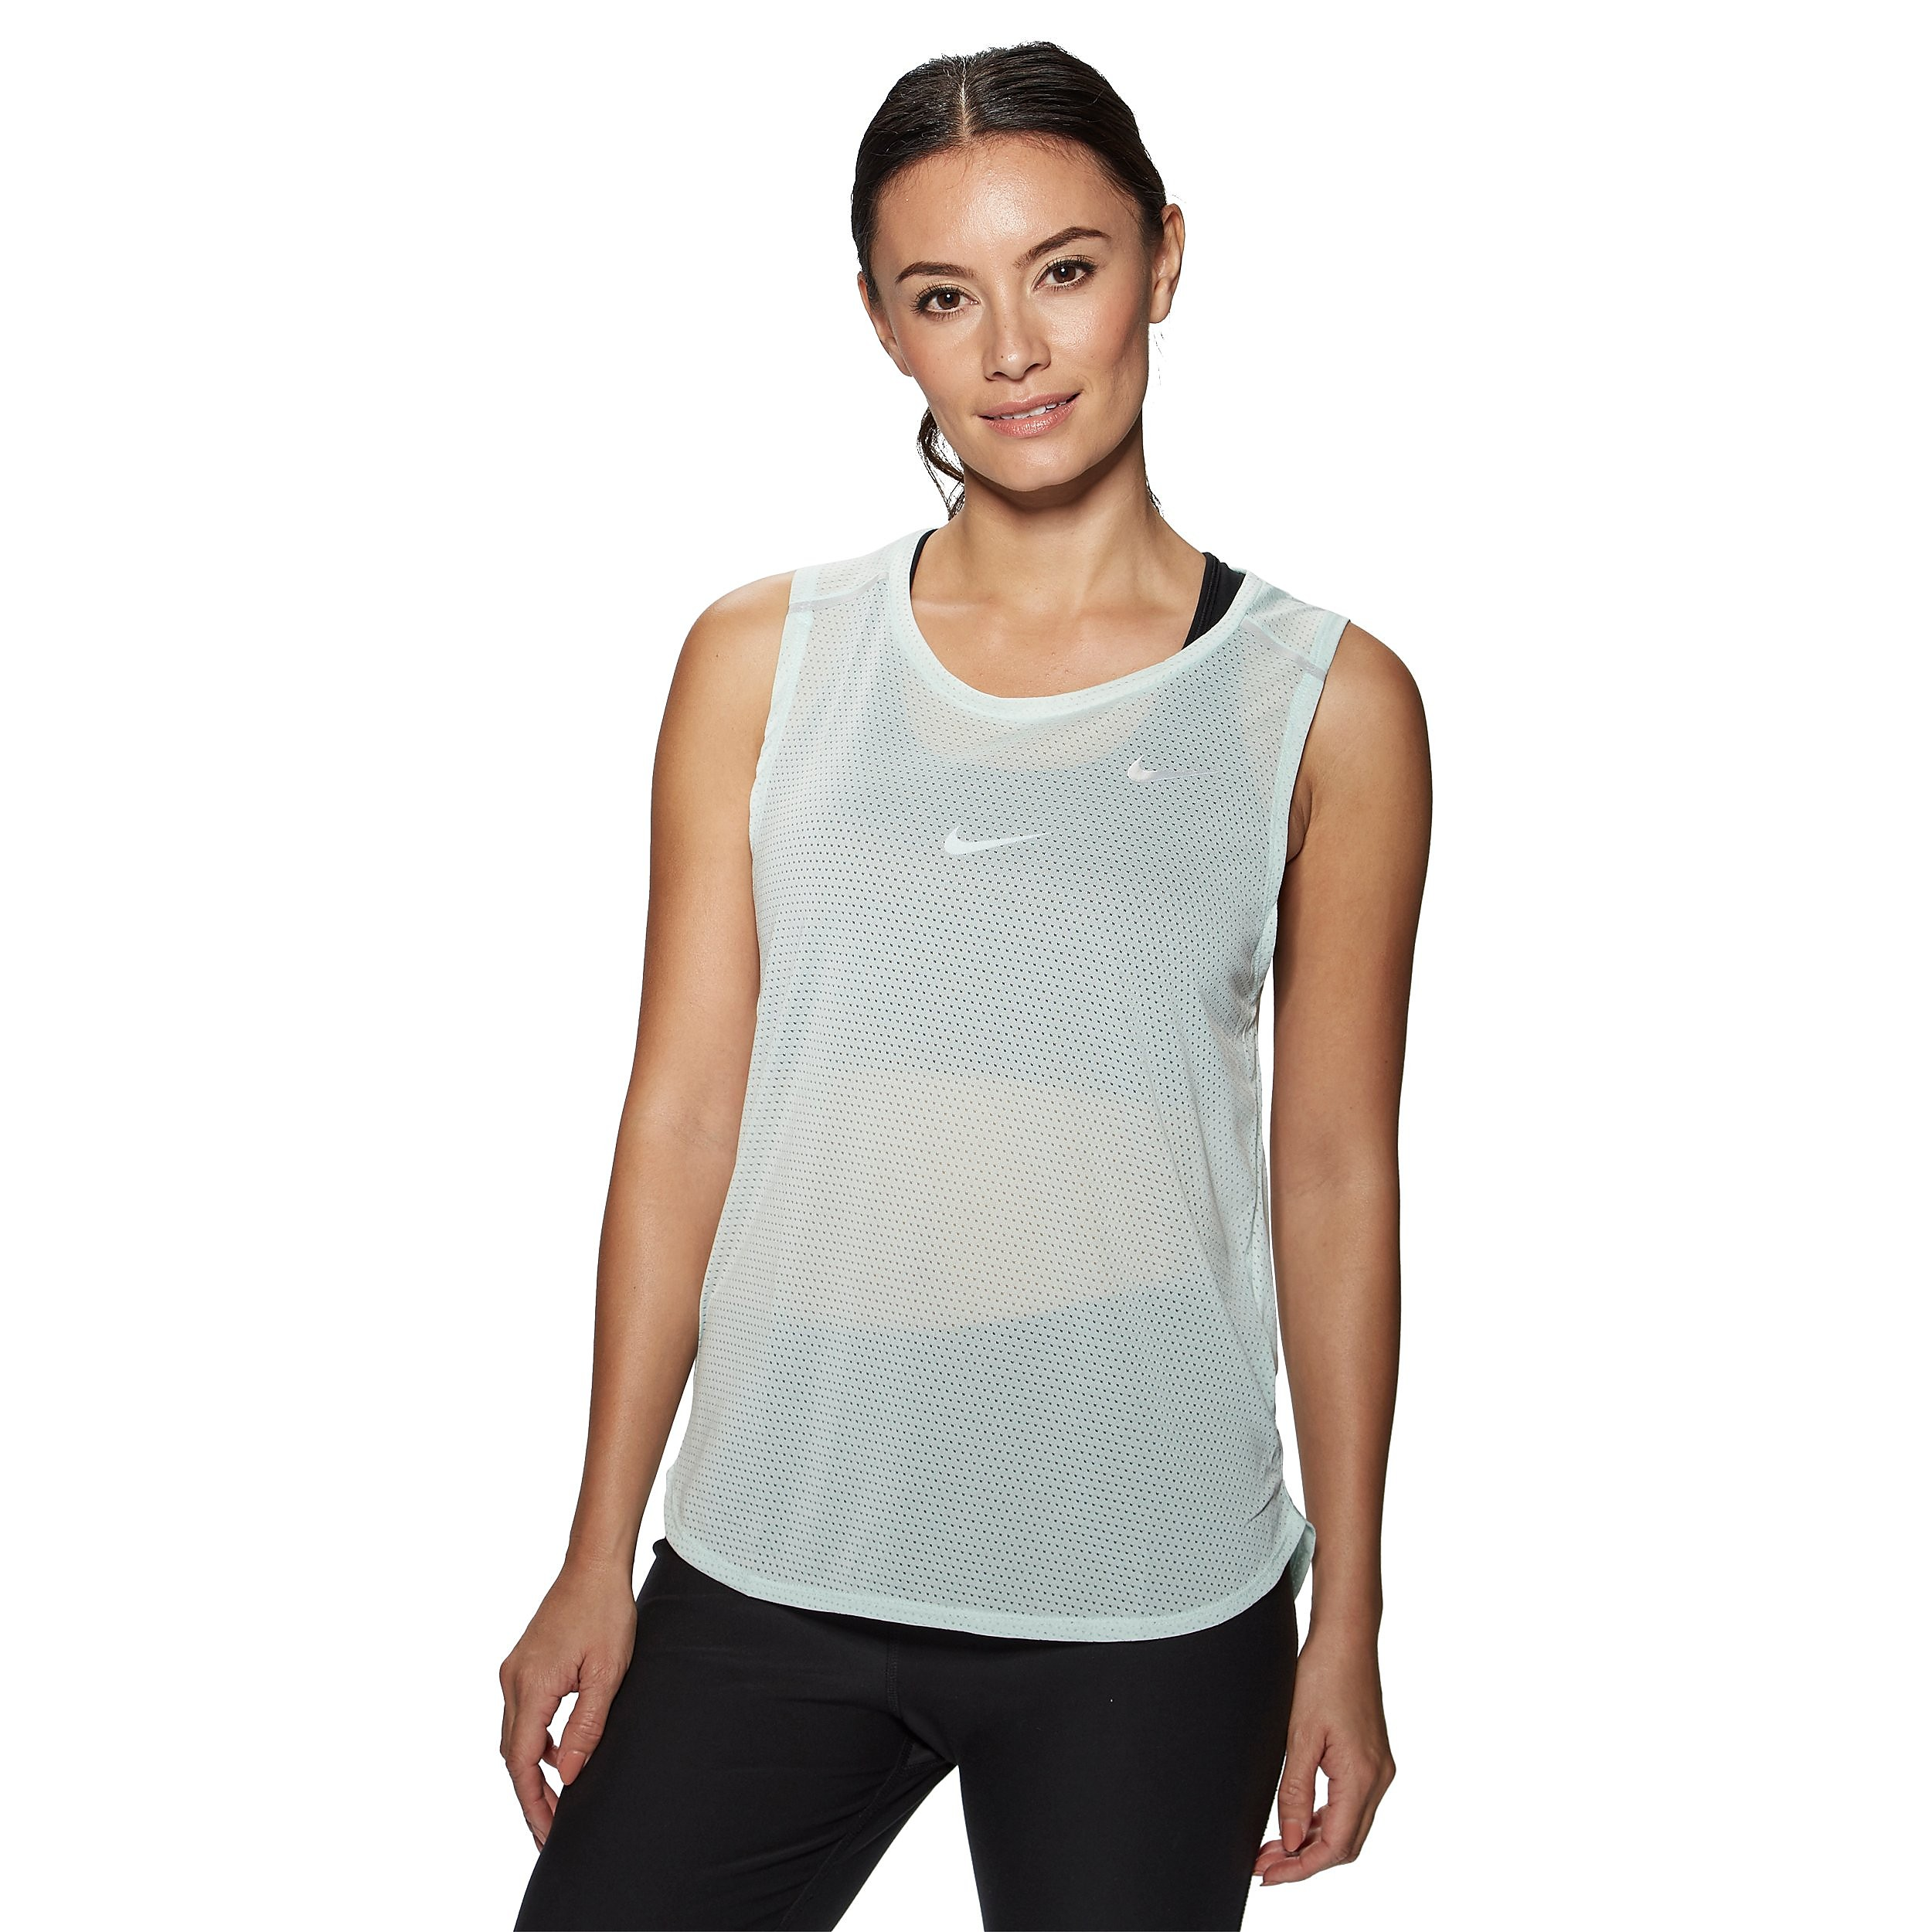 Nike Breathe Women's Running Tank Top